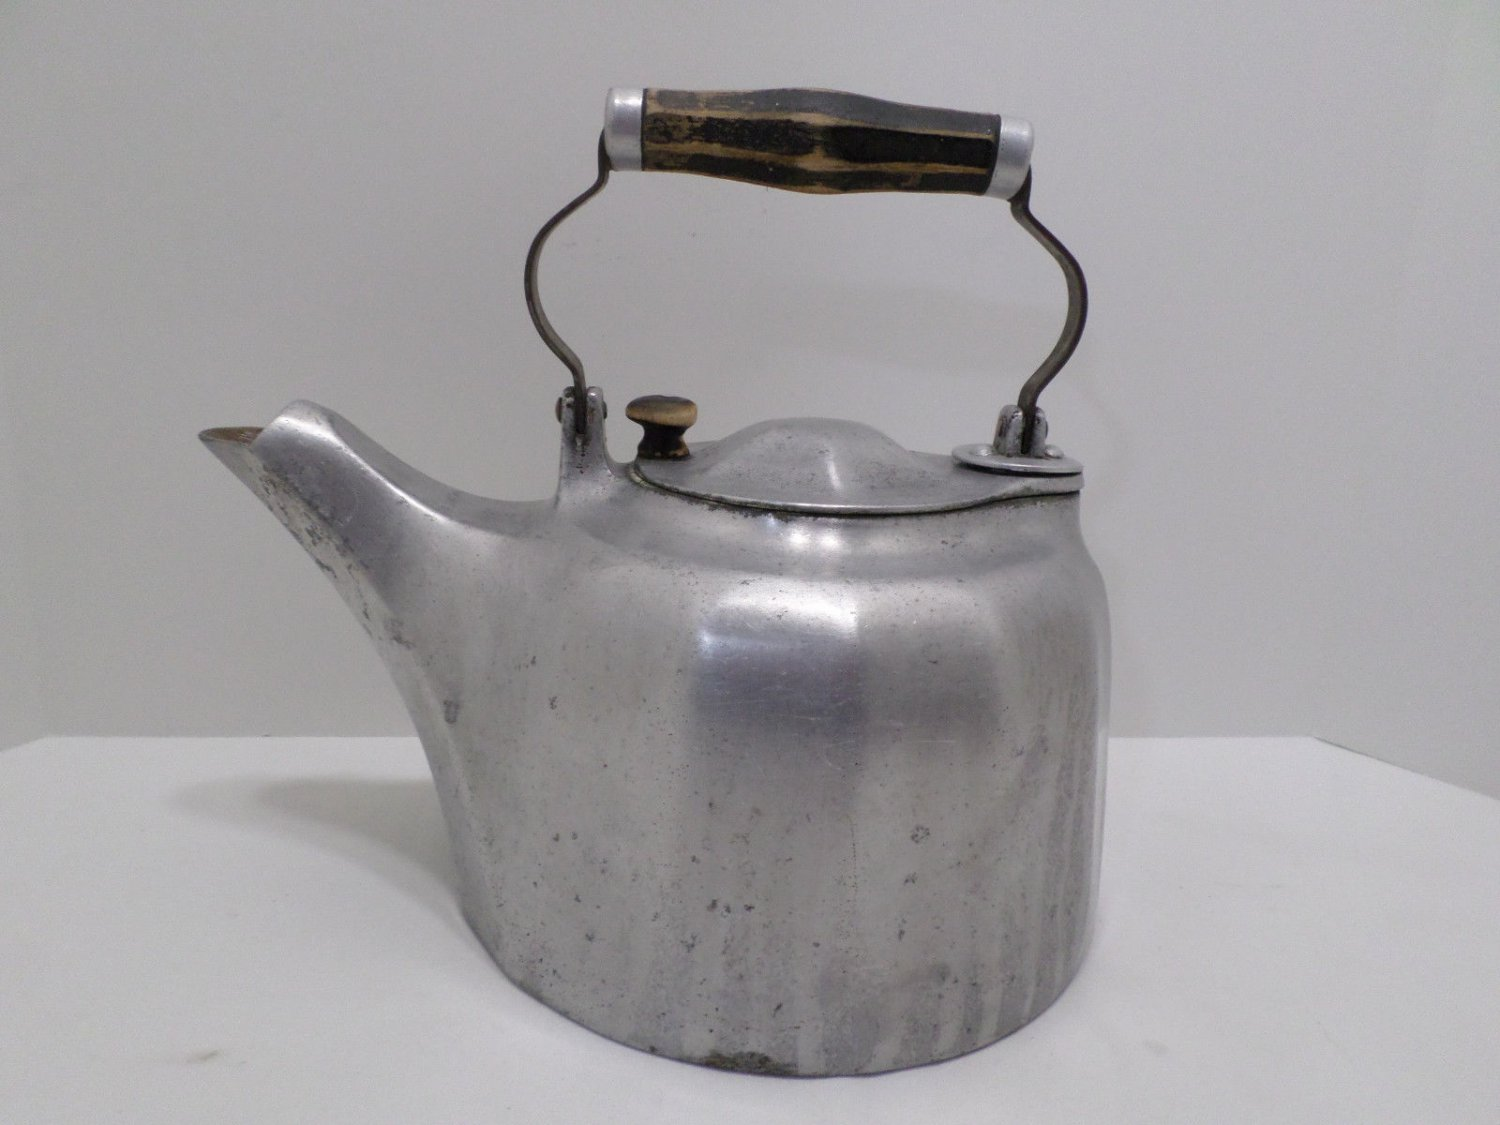 Vintage Metal Teapot with a Wooden Handle